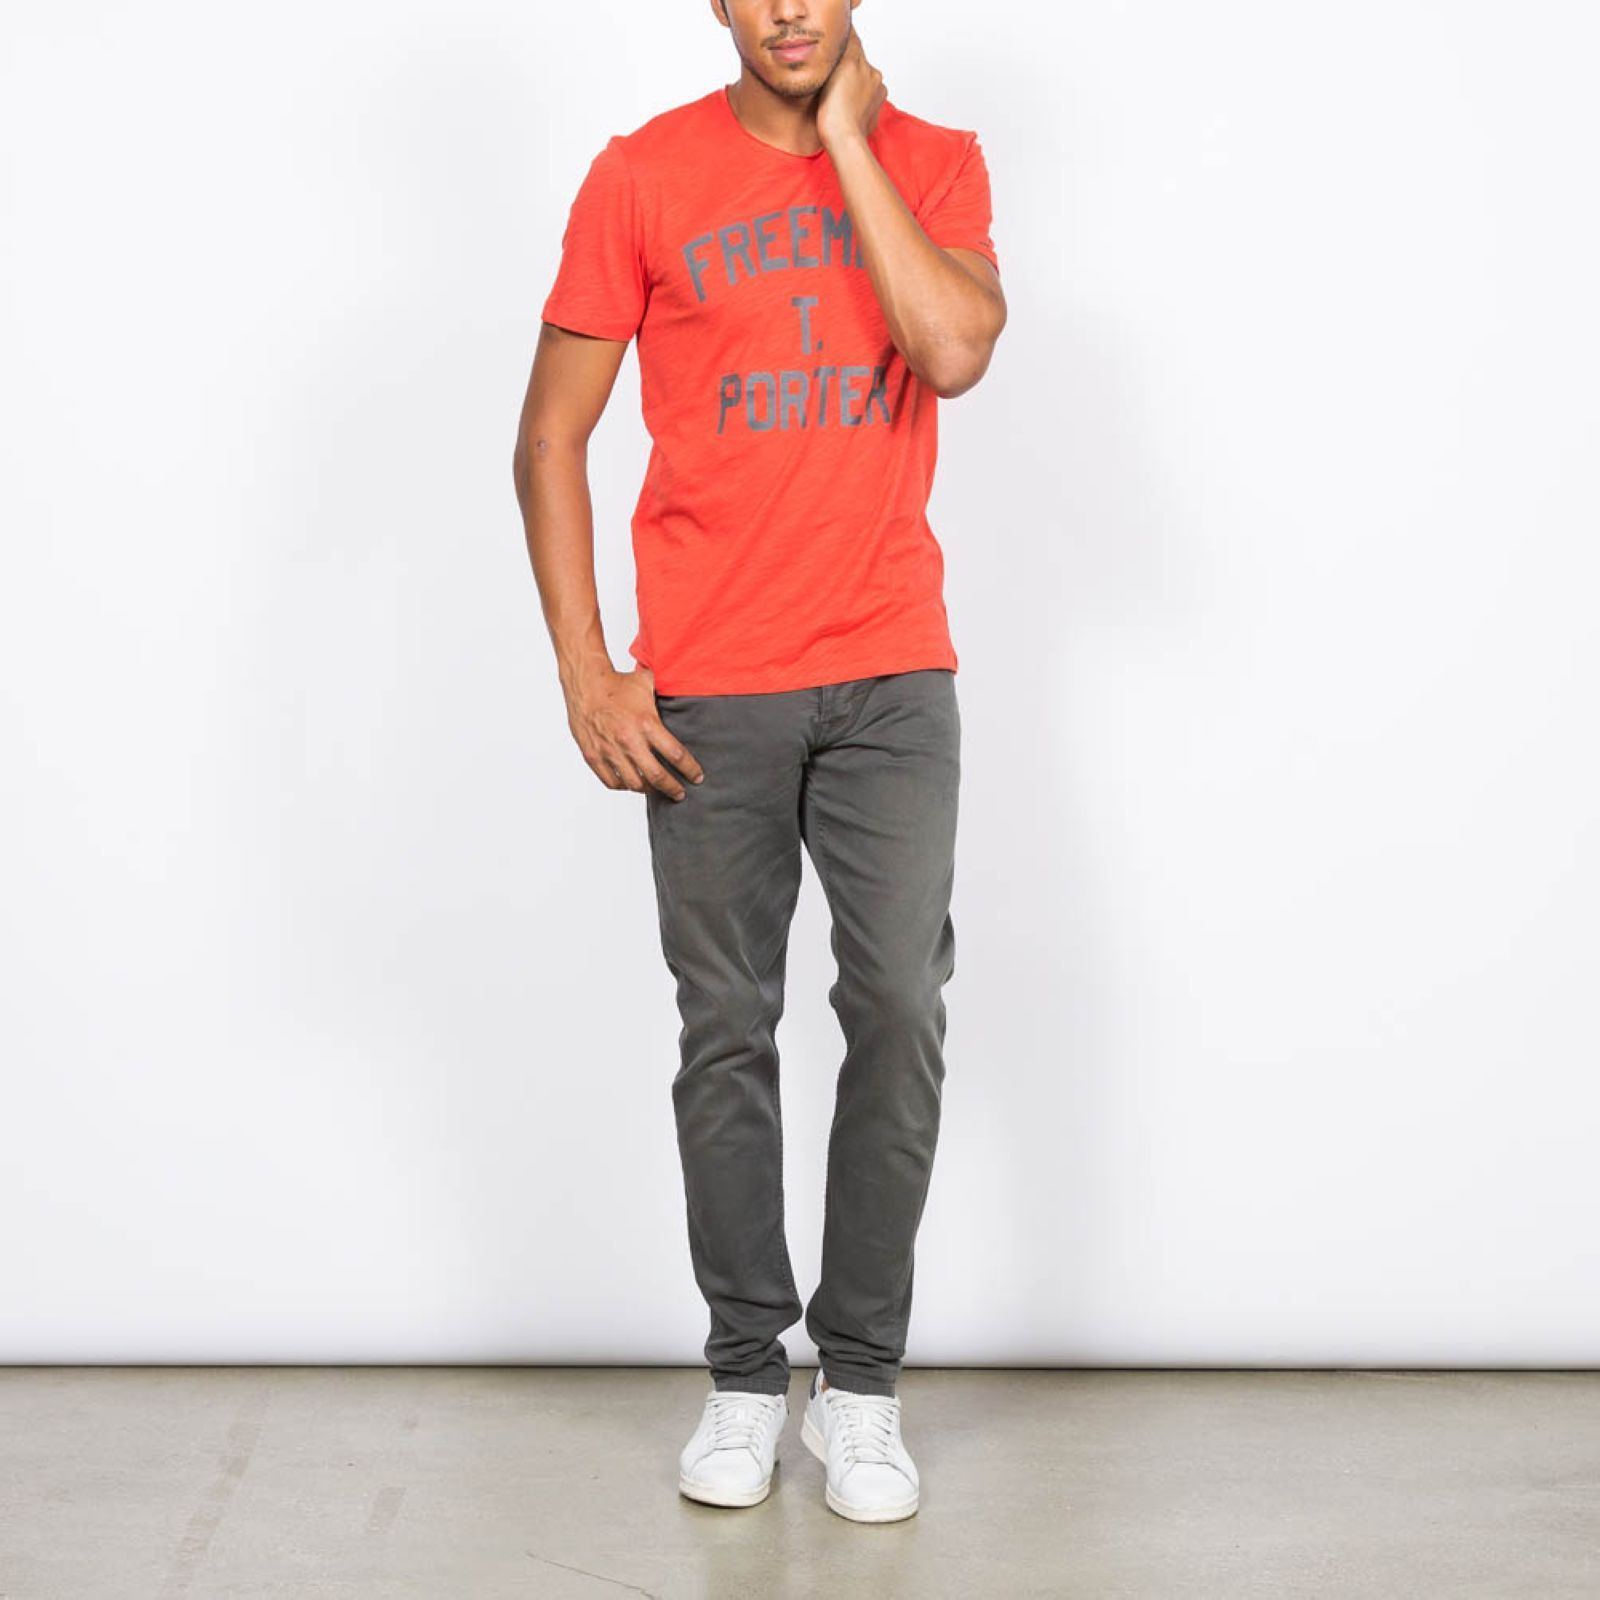 Freeman T Porter Tyle  T-shirt Manches Courtes  Rouge